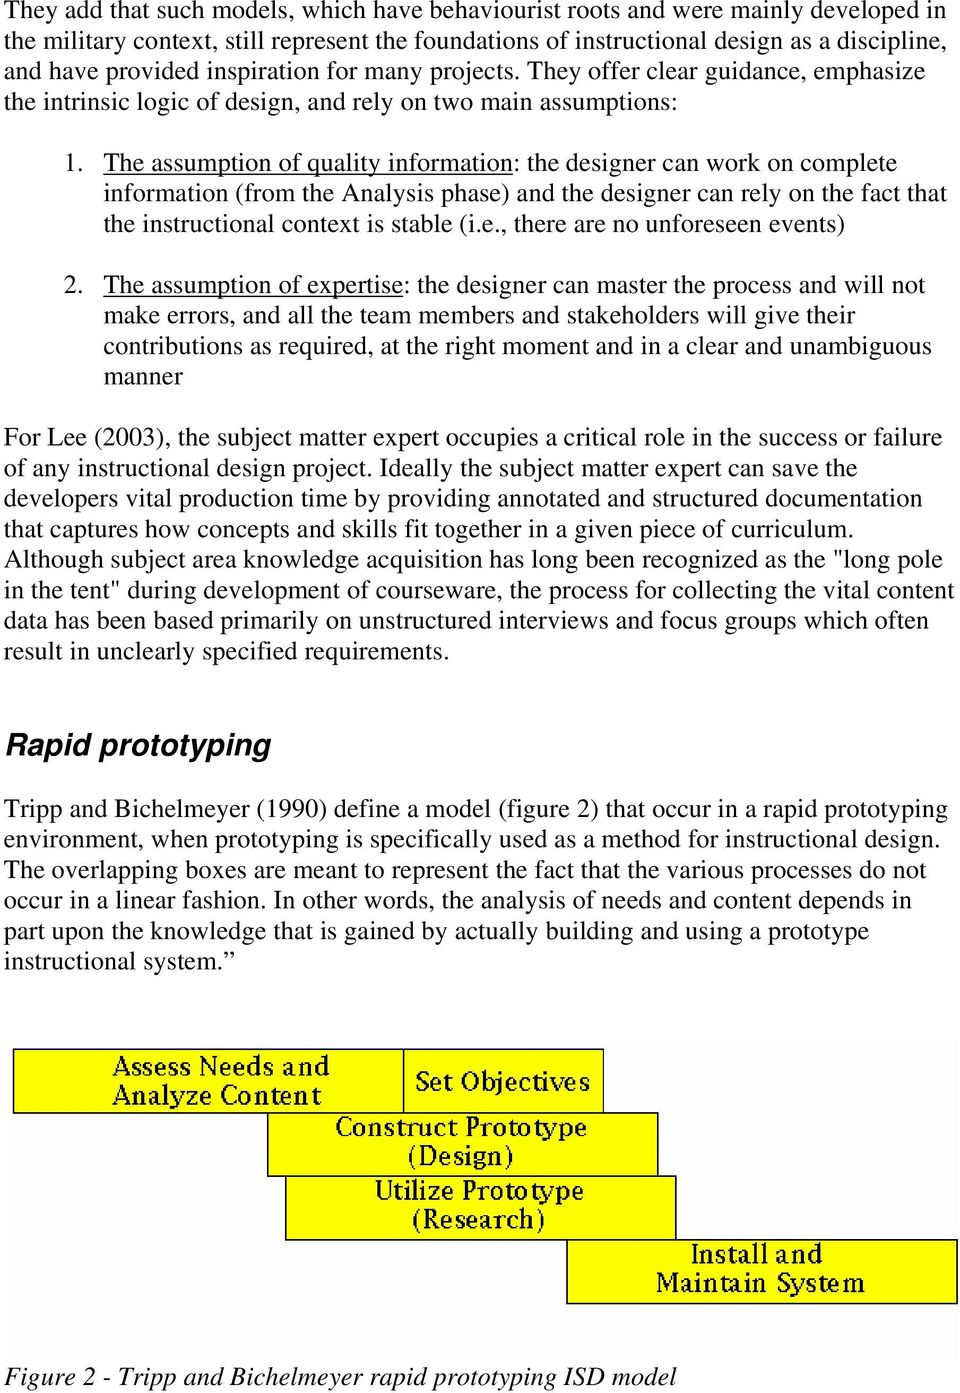 Rapid Prototyping An Efficient Way To Collaboratively Design And Develop E Learning Content Pdf Free Download